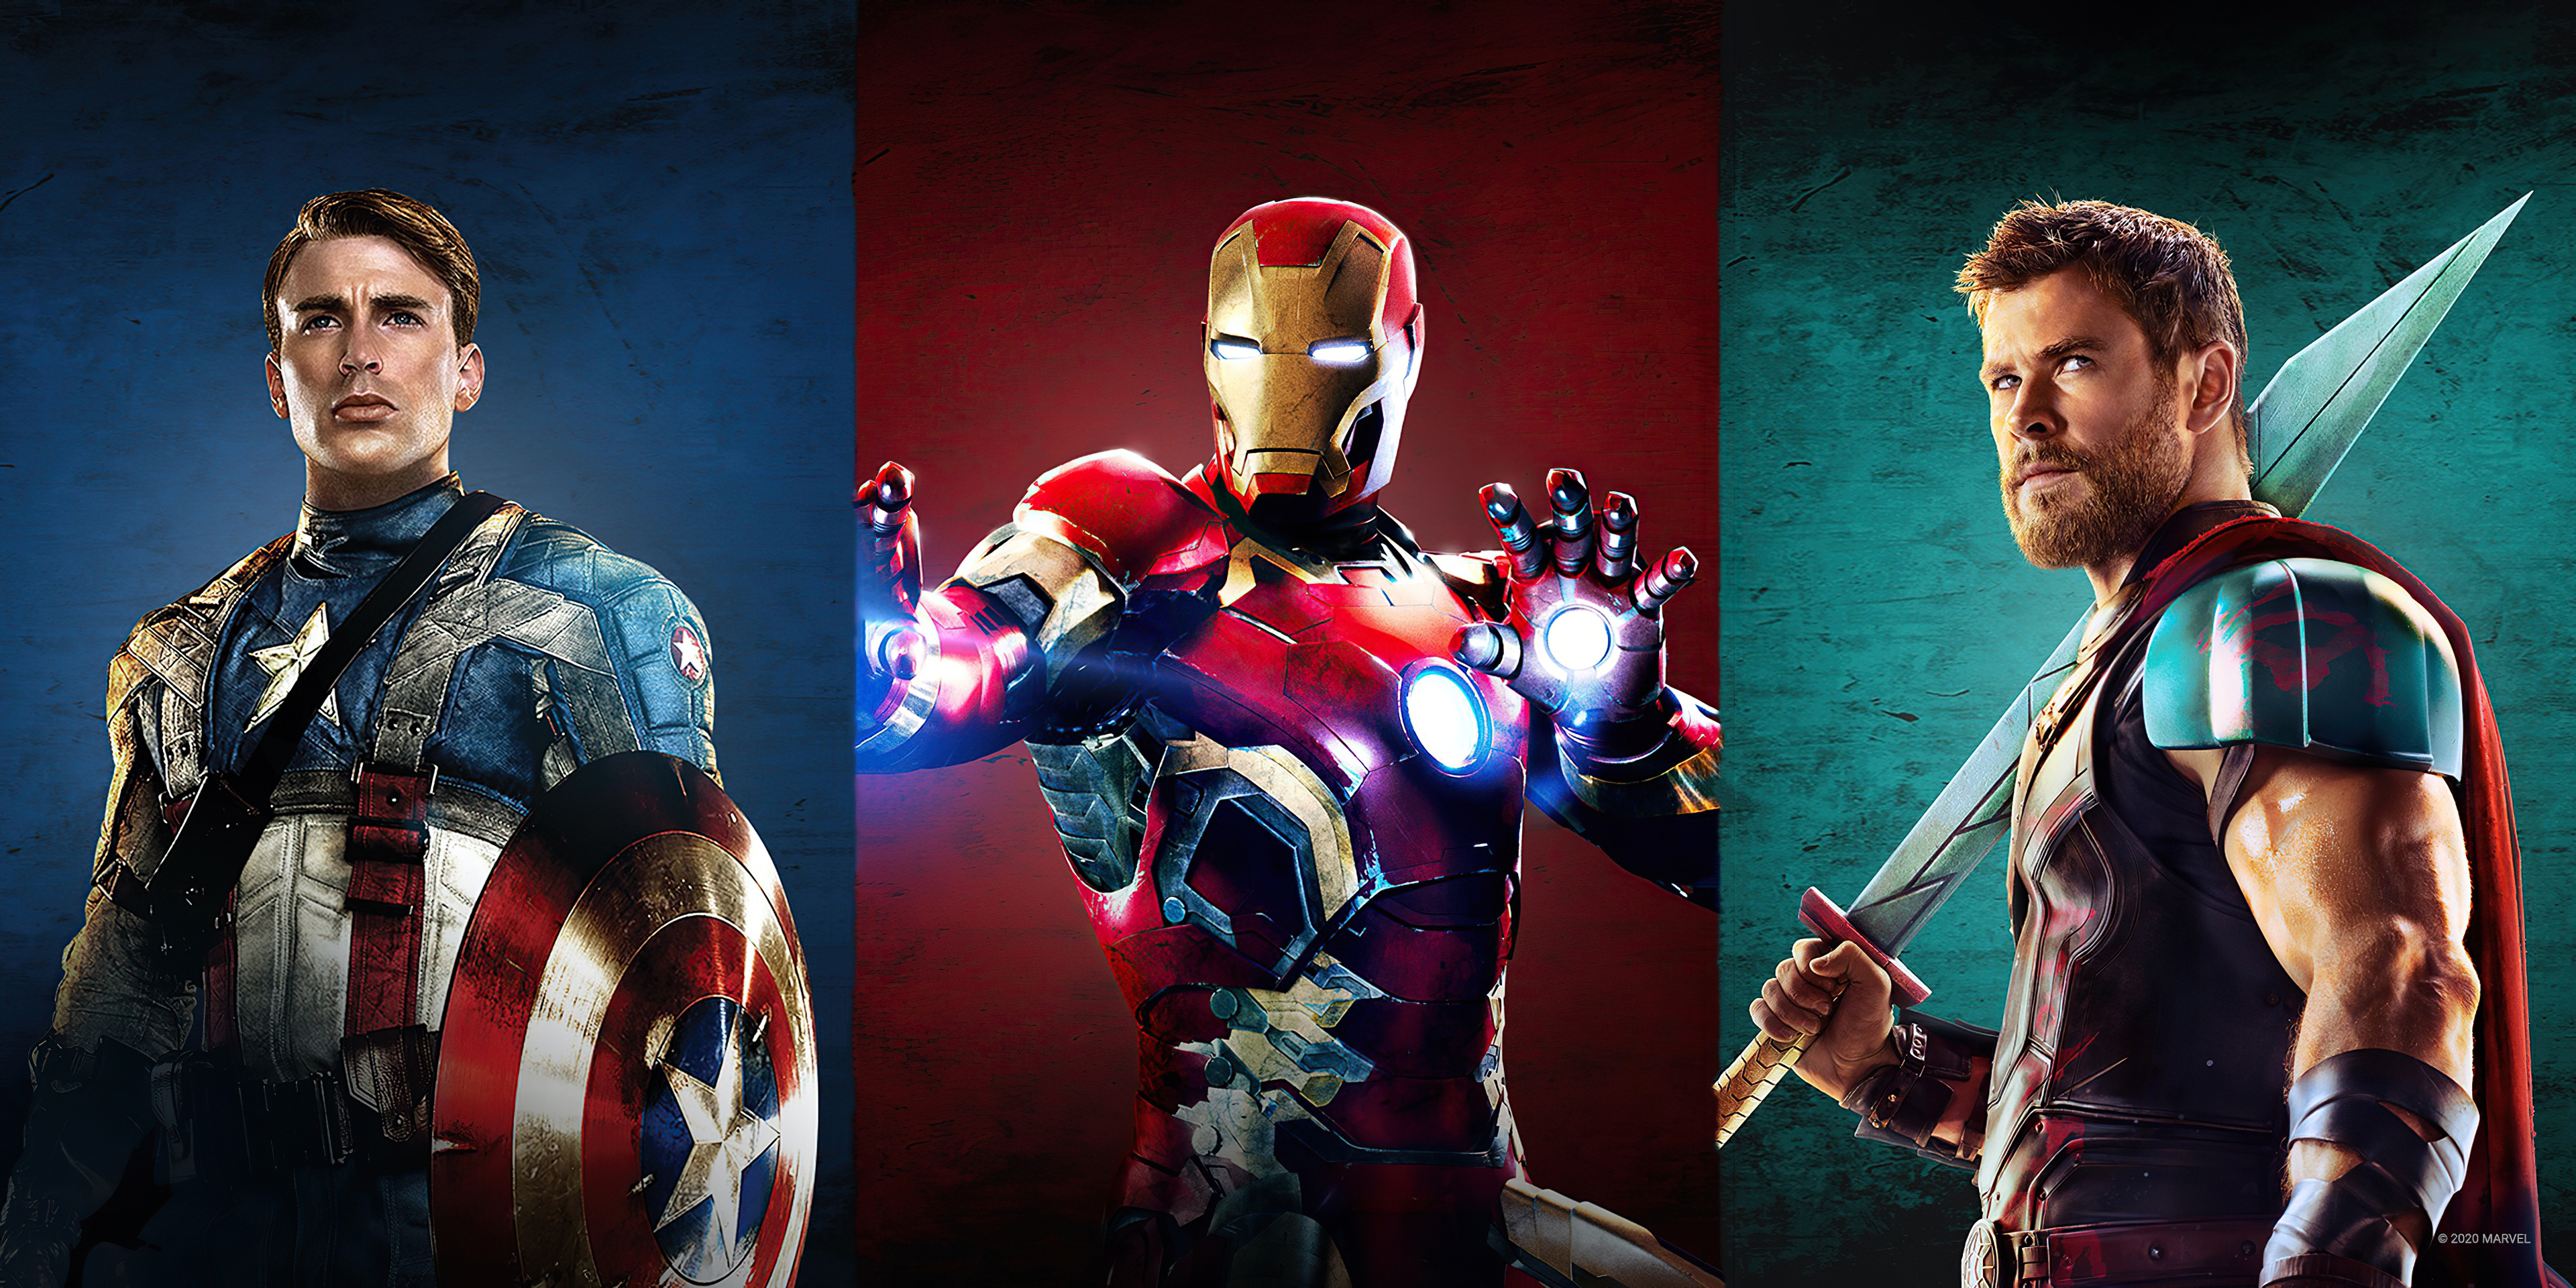 iron man captain america thor 4k 1619215238 - Iron Man Captain America Thor 4k - Iron Man Captain America Thor 4k wallpapers